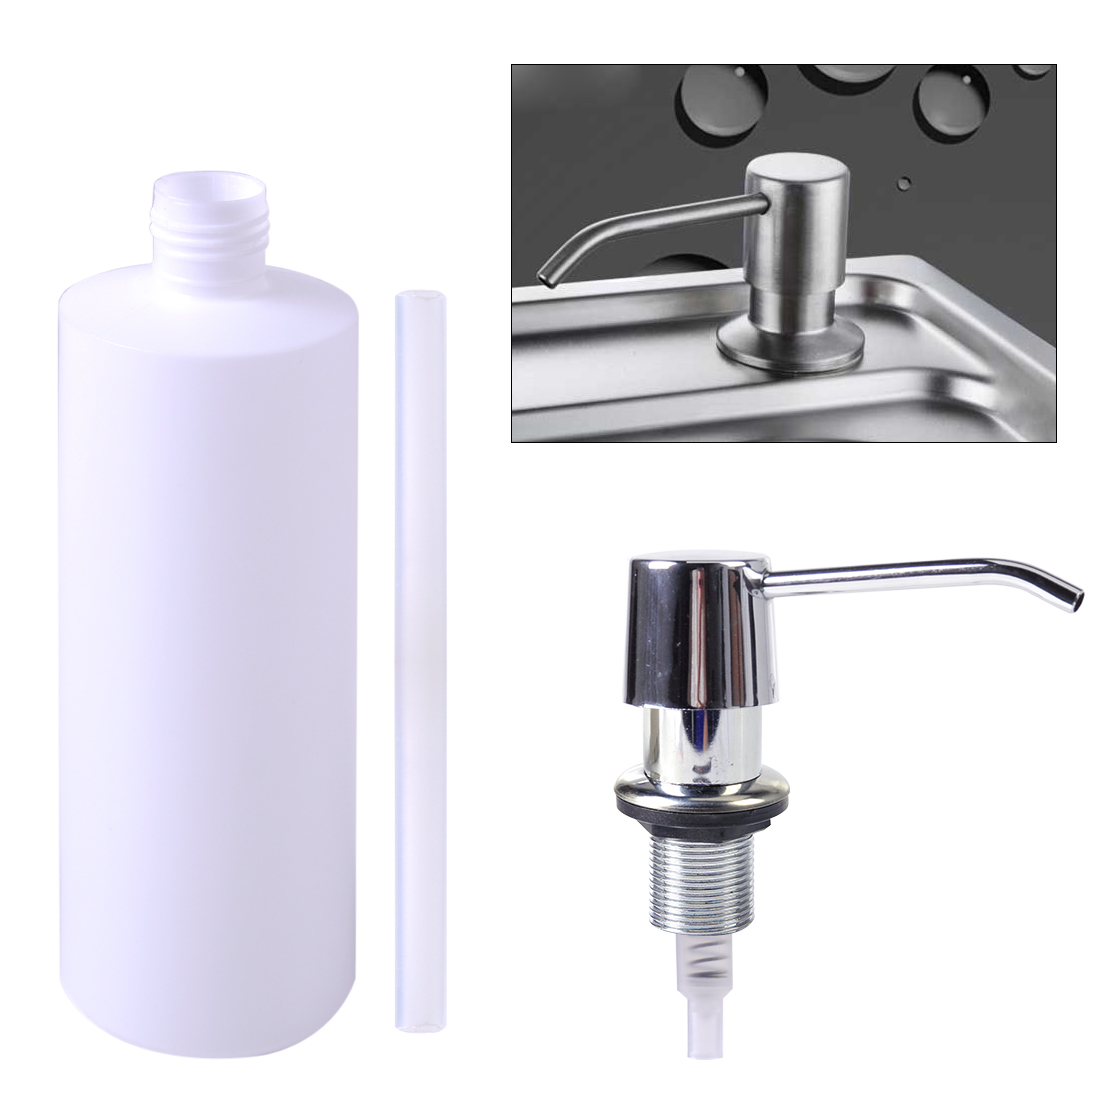 Hand Soap Bottle Holder Bathroom Sink Liquid Soap Holder Dispenser Plastic Kitchen